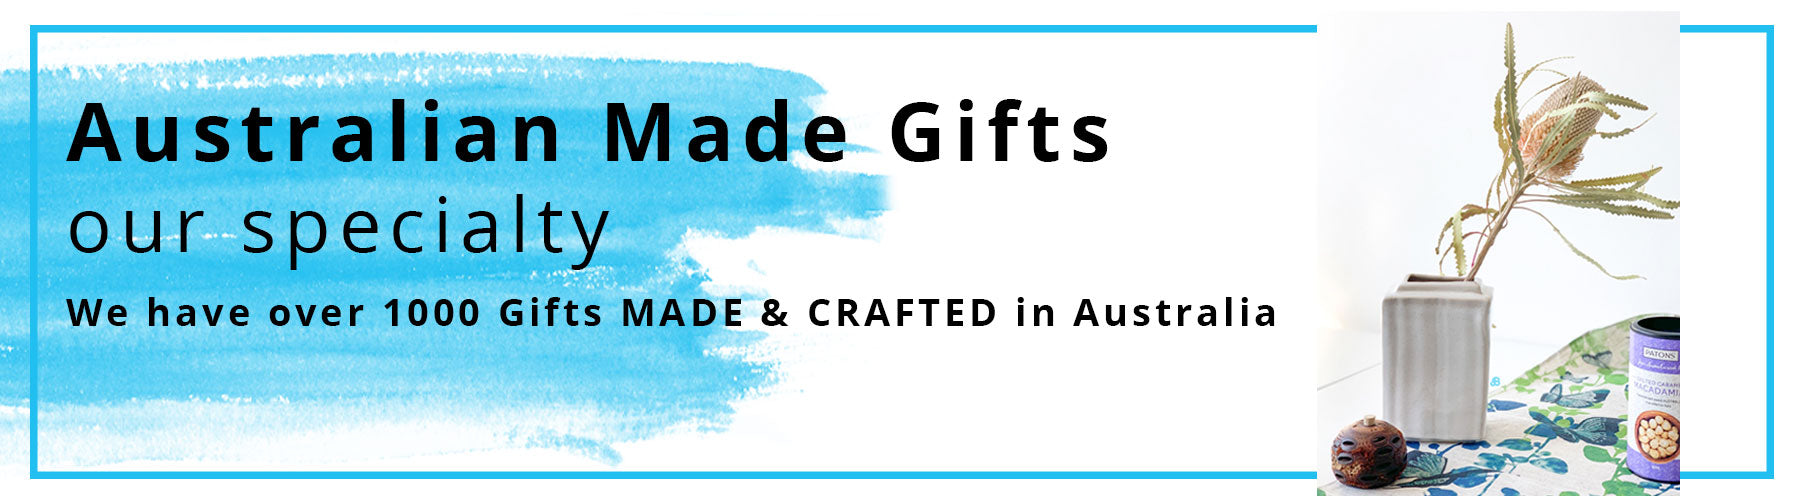 Australian Souvenirs - The Best Presents Made in Australia to Send Overseas